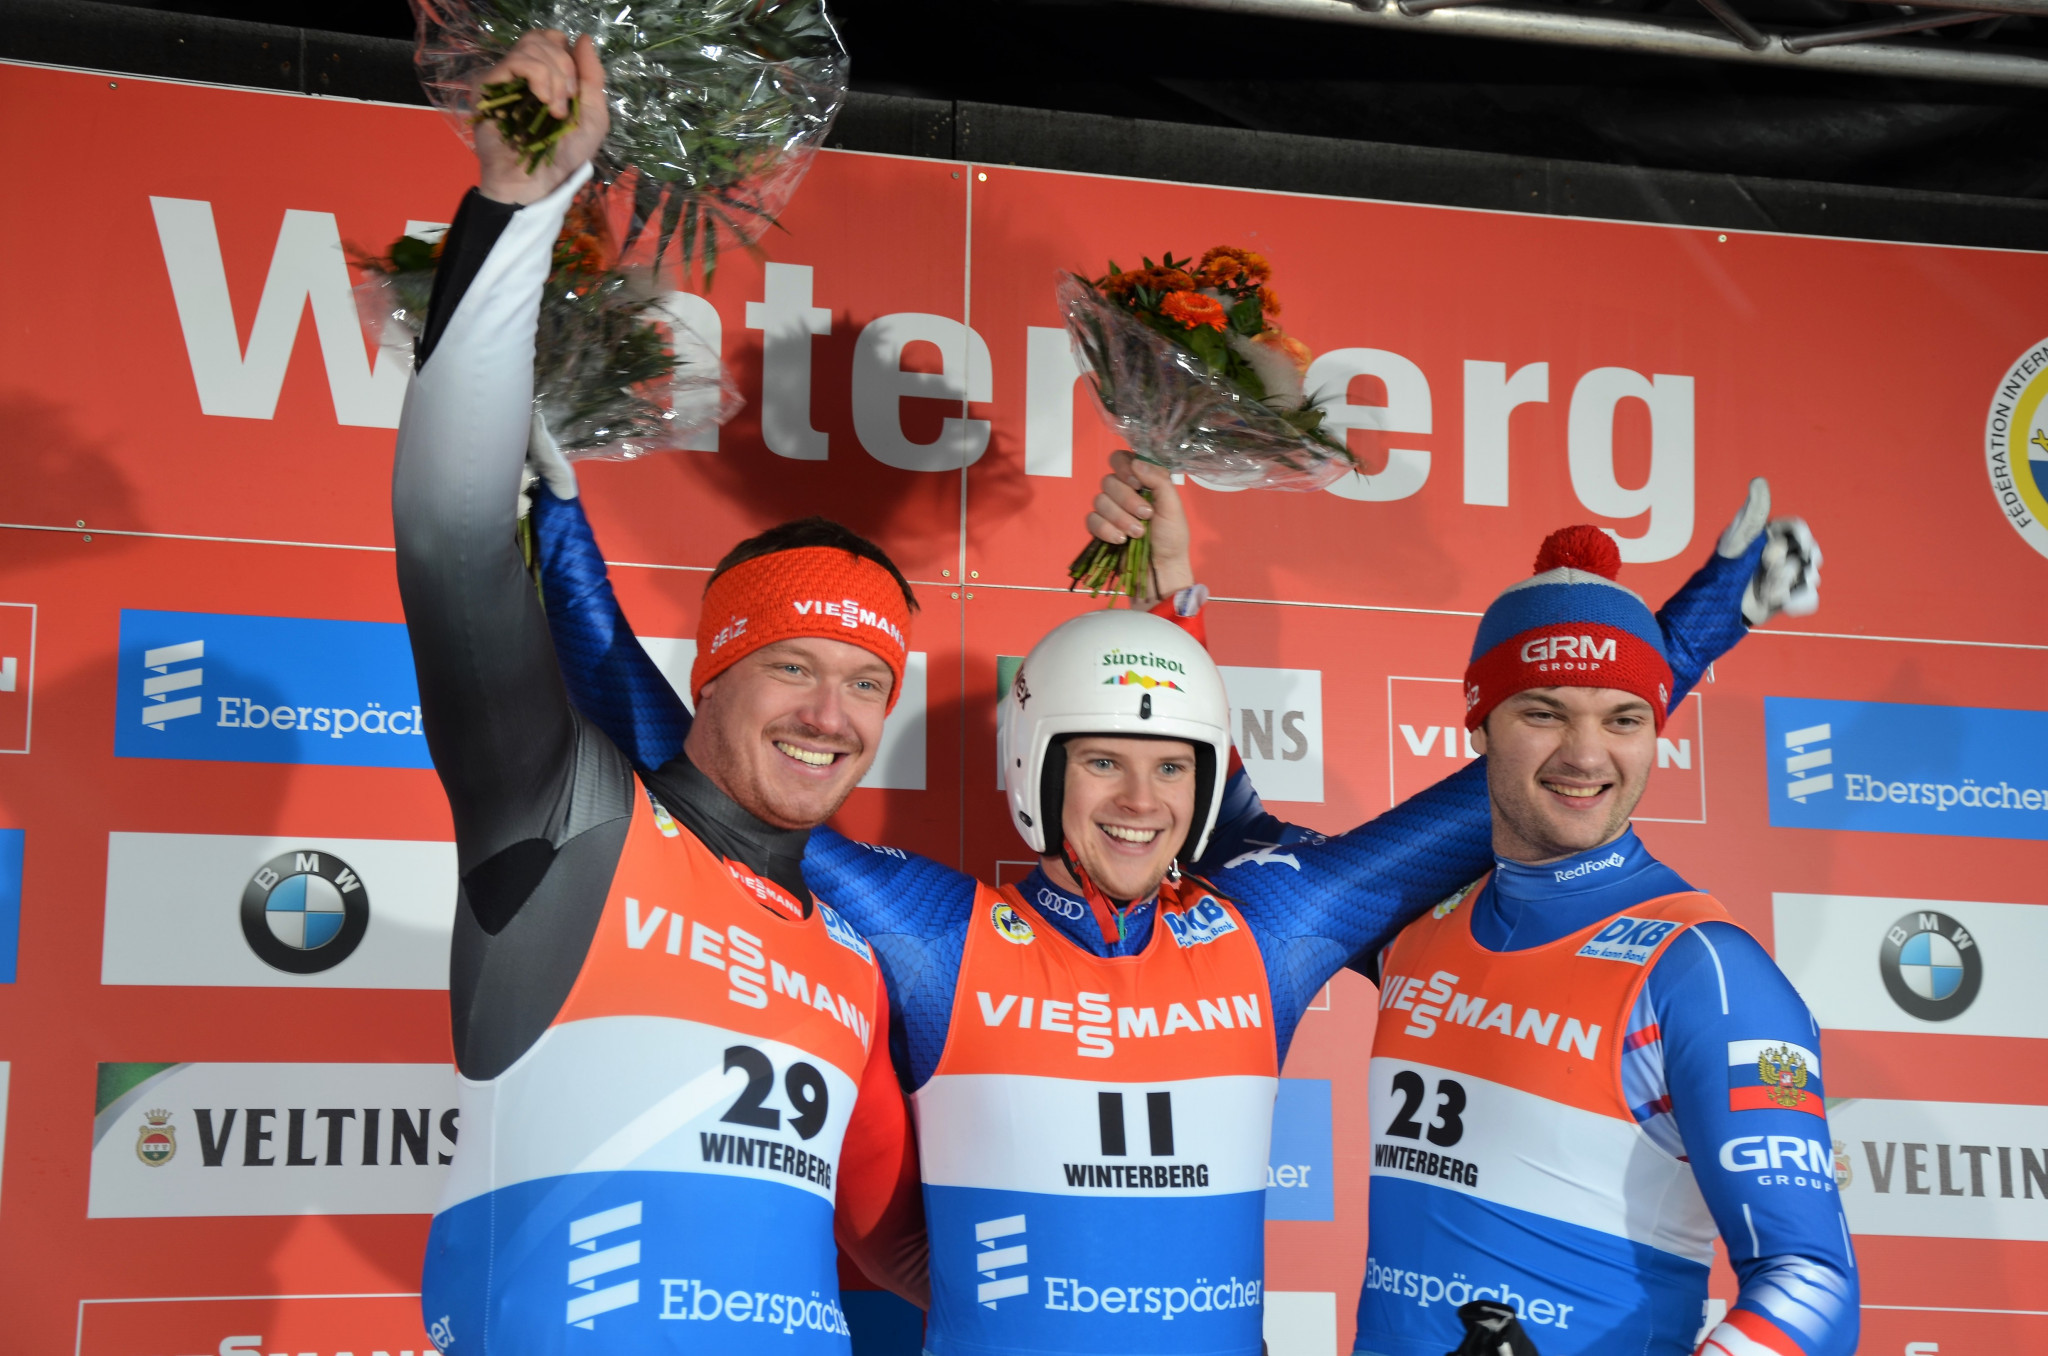 Fischnaller takes surprise victory at Luge World Cup